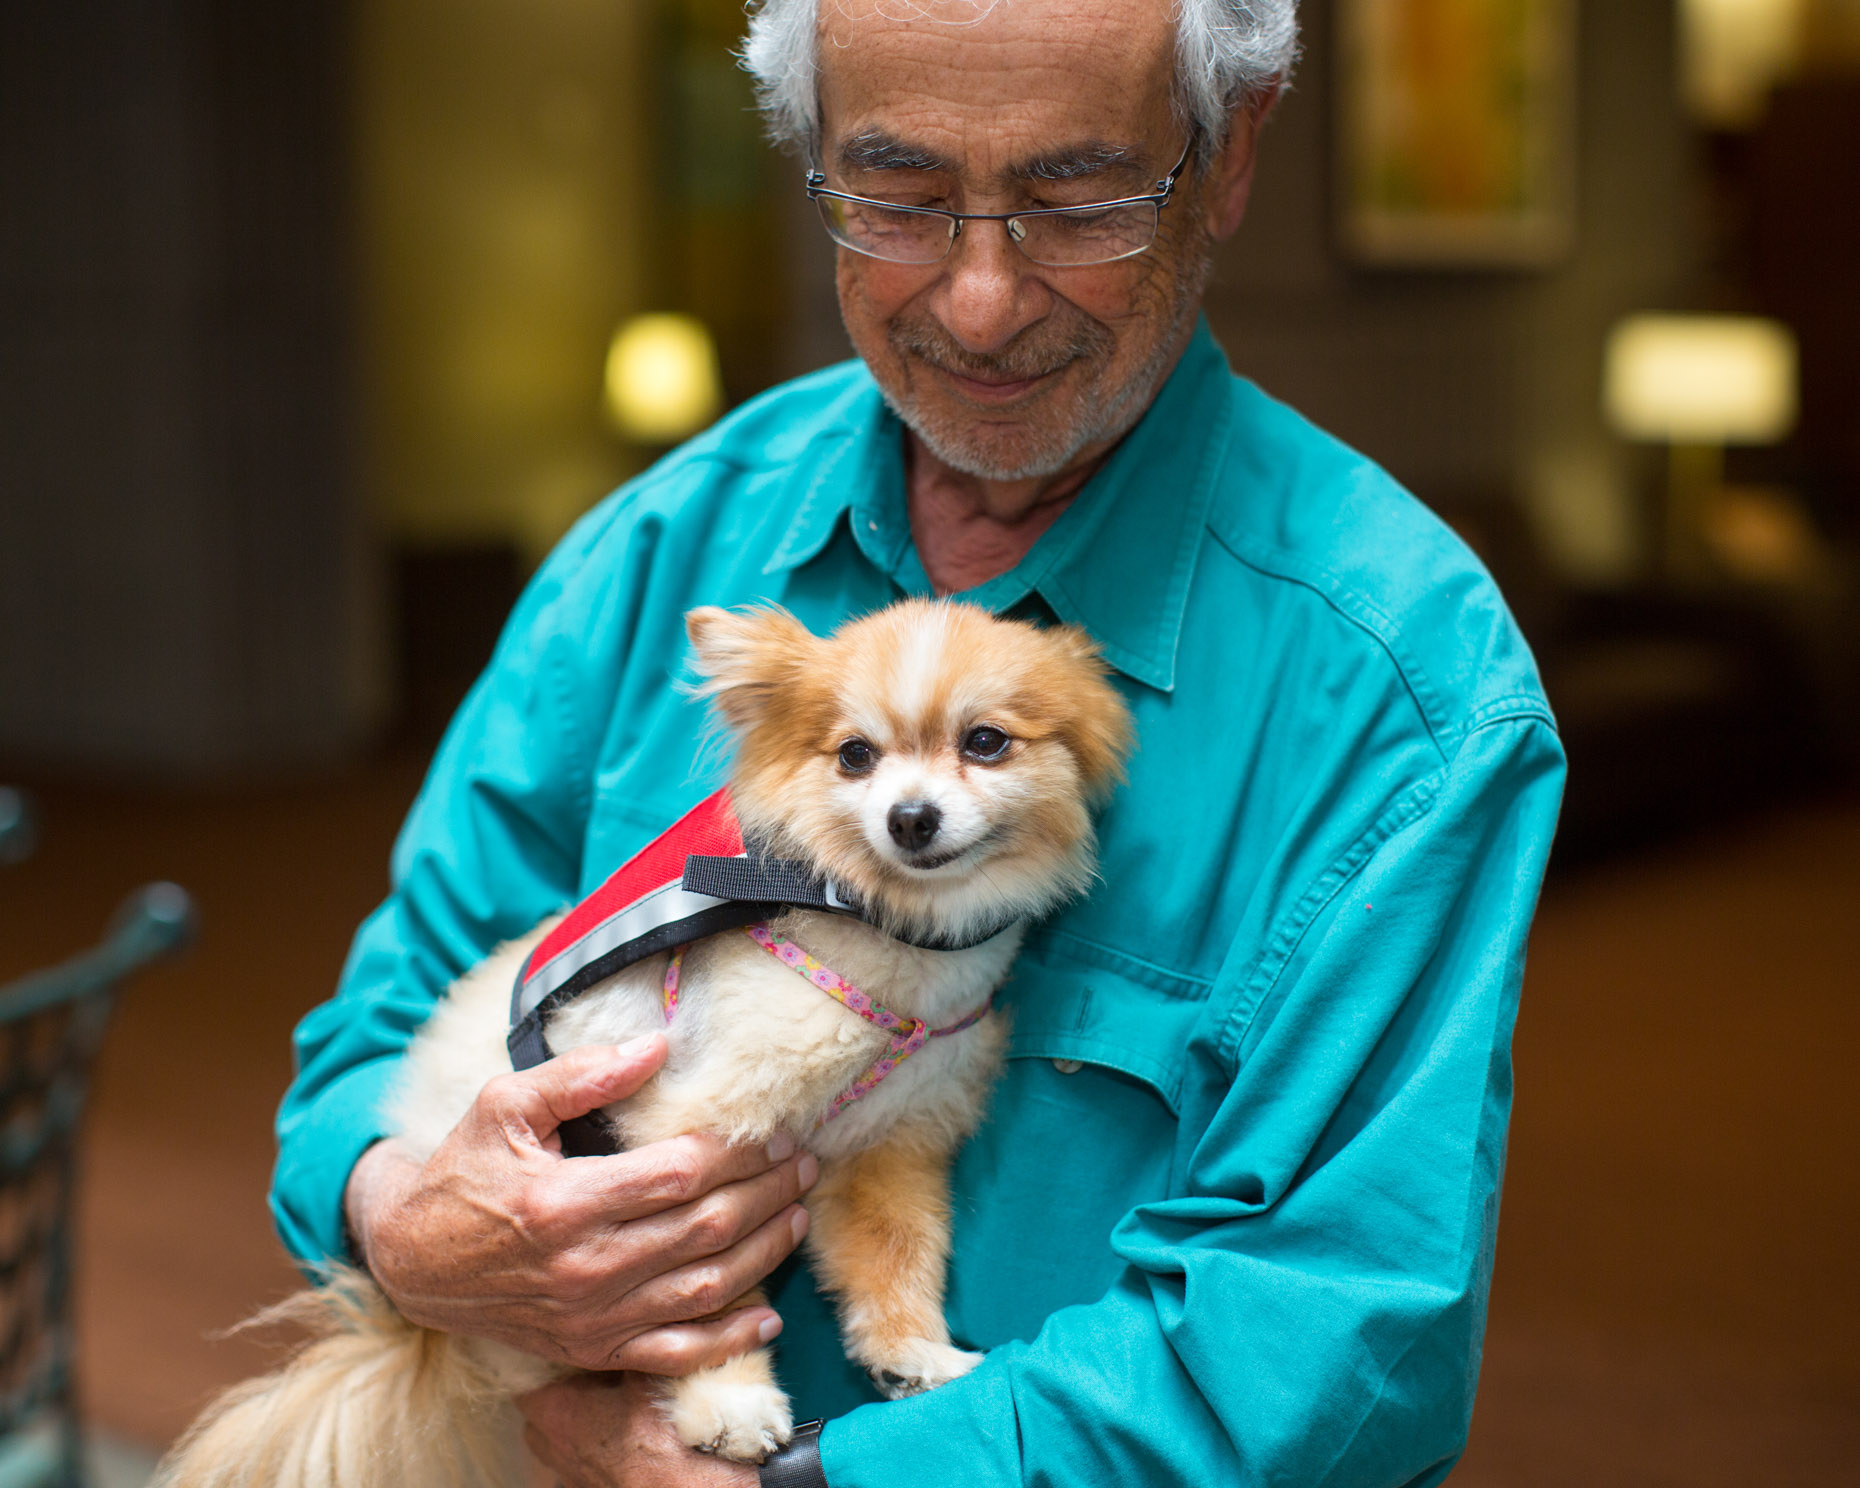 Commercial Animal Photography | Man Holding Therapy Dog on Lap by Mark Rogers